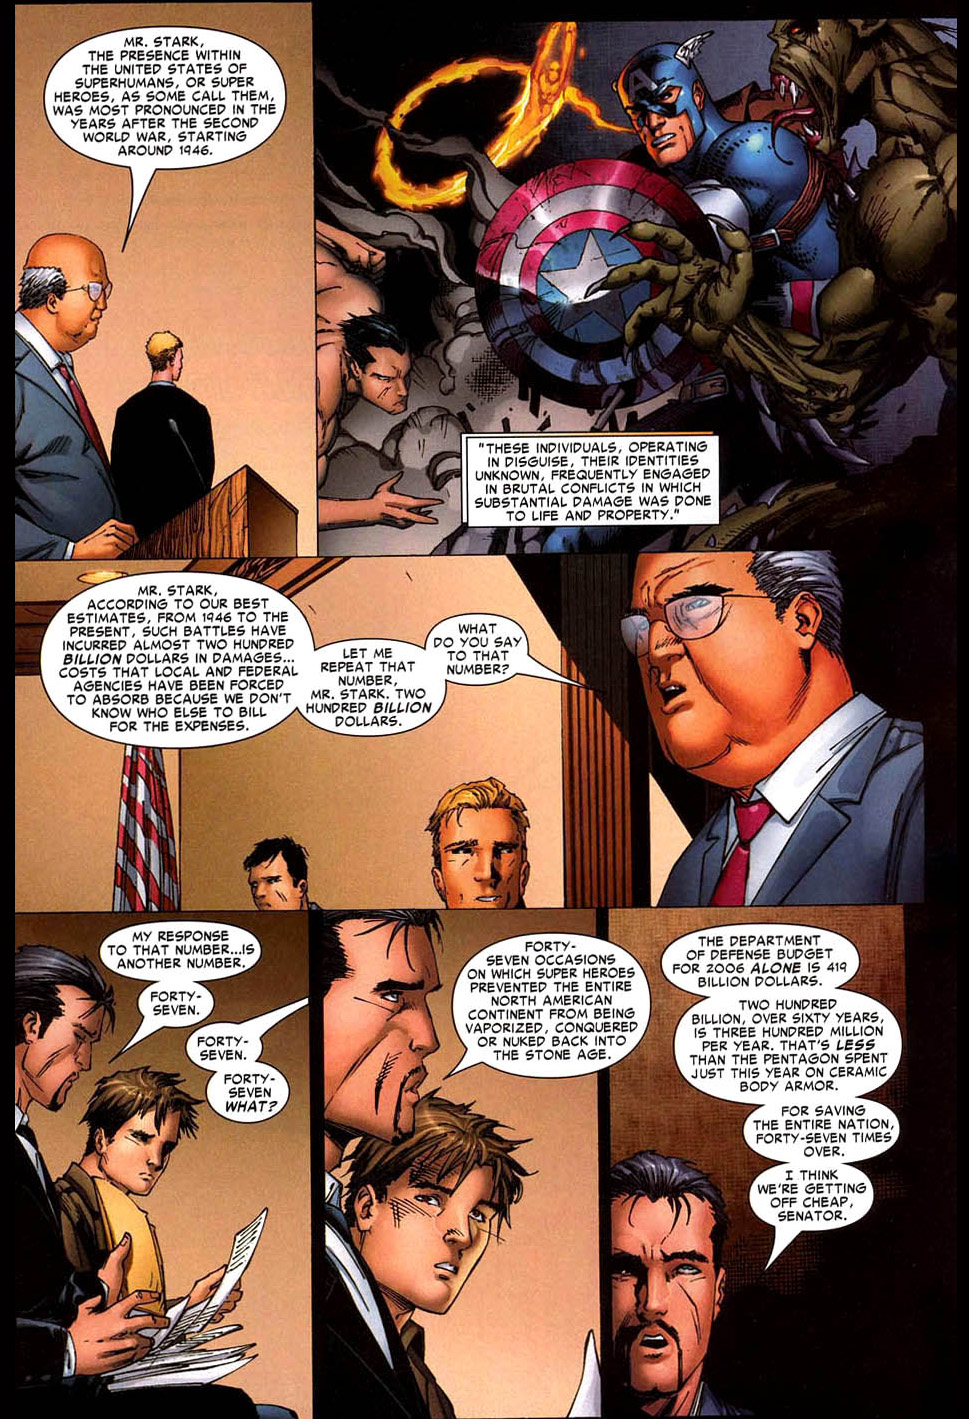 tony stark and peter parker argue against super human registration